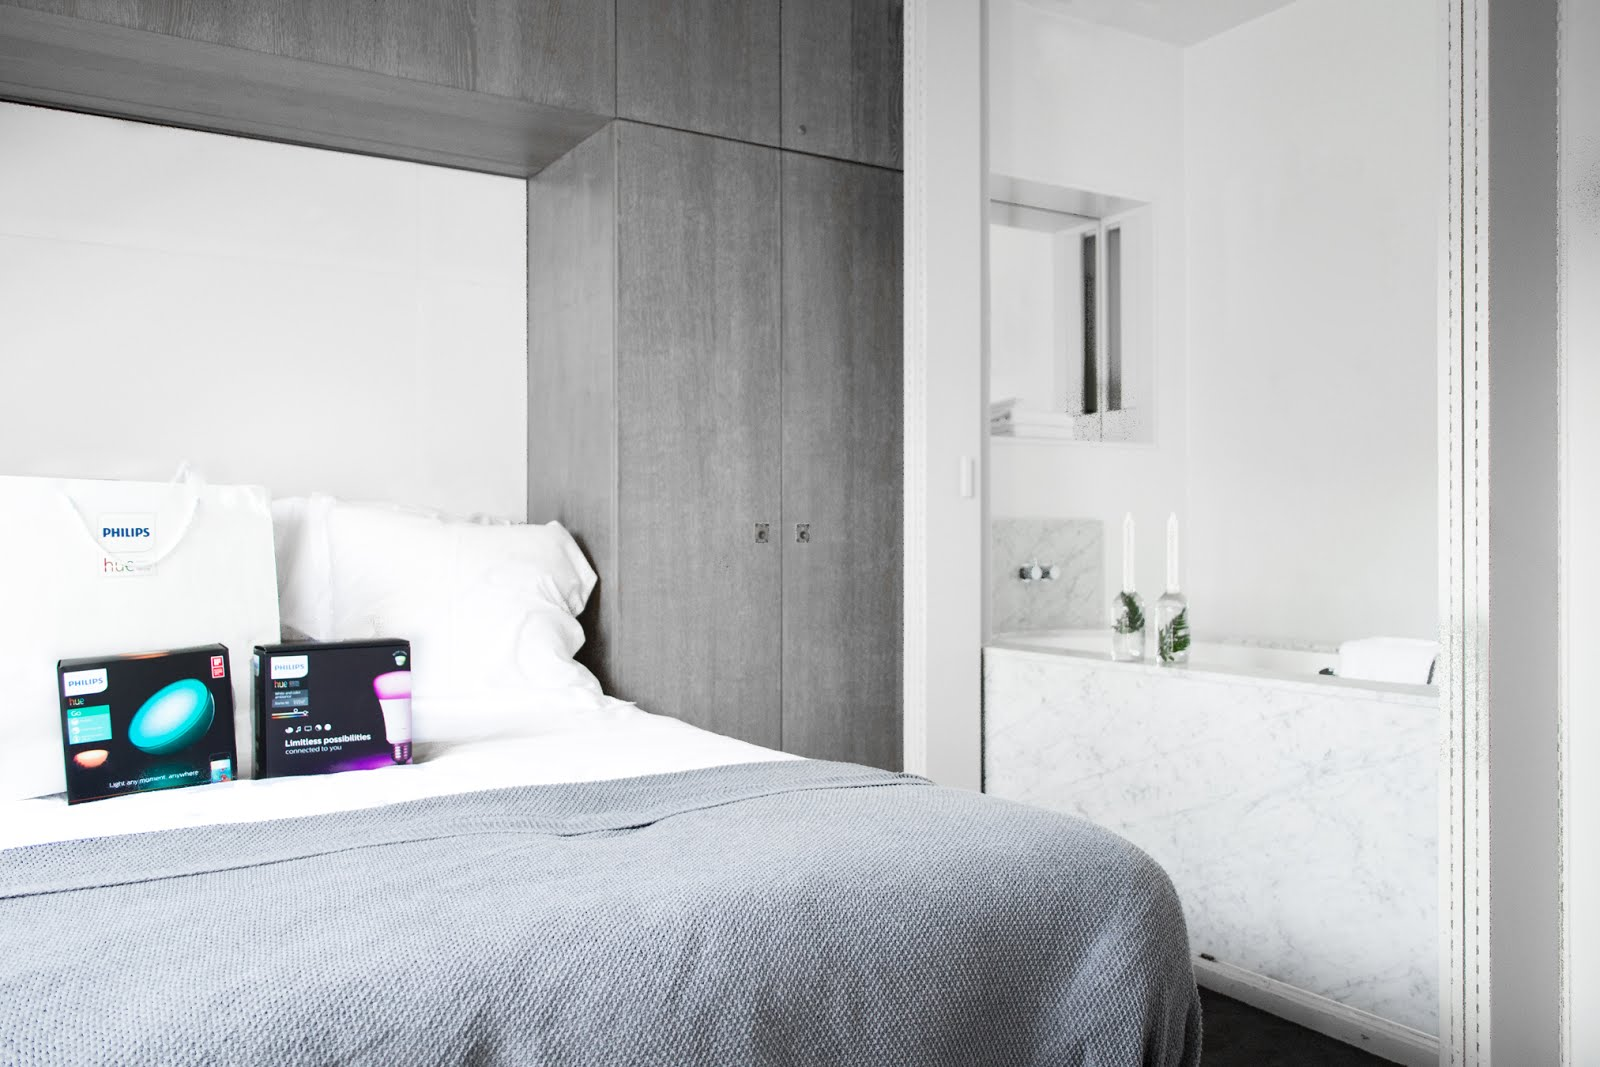 Philips hue, wireless light, wellbeing, event, hotel julien antwerp, hotelroom